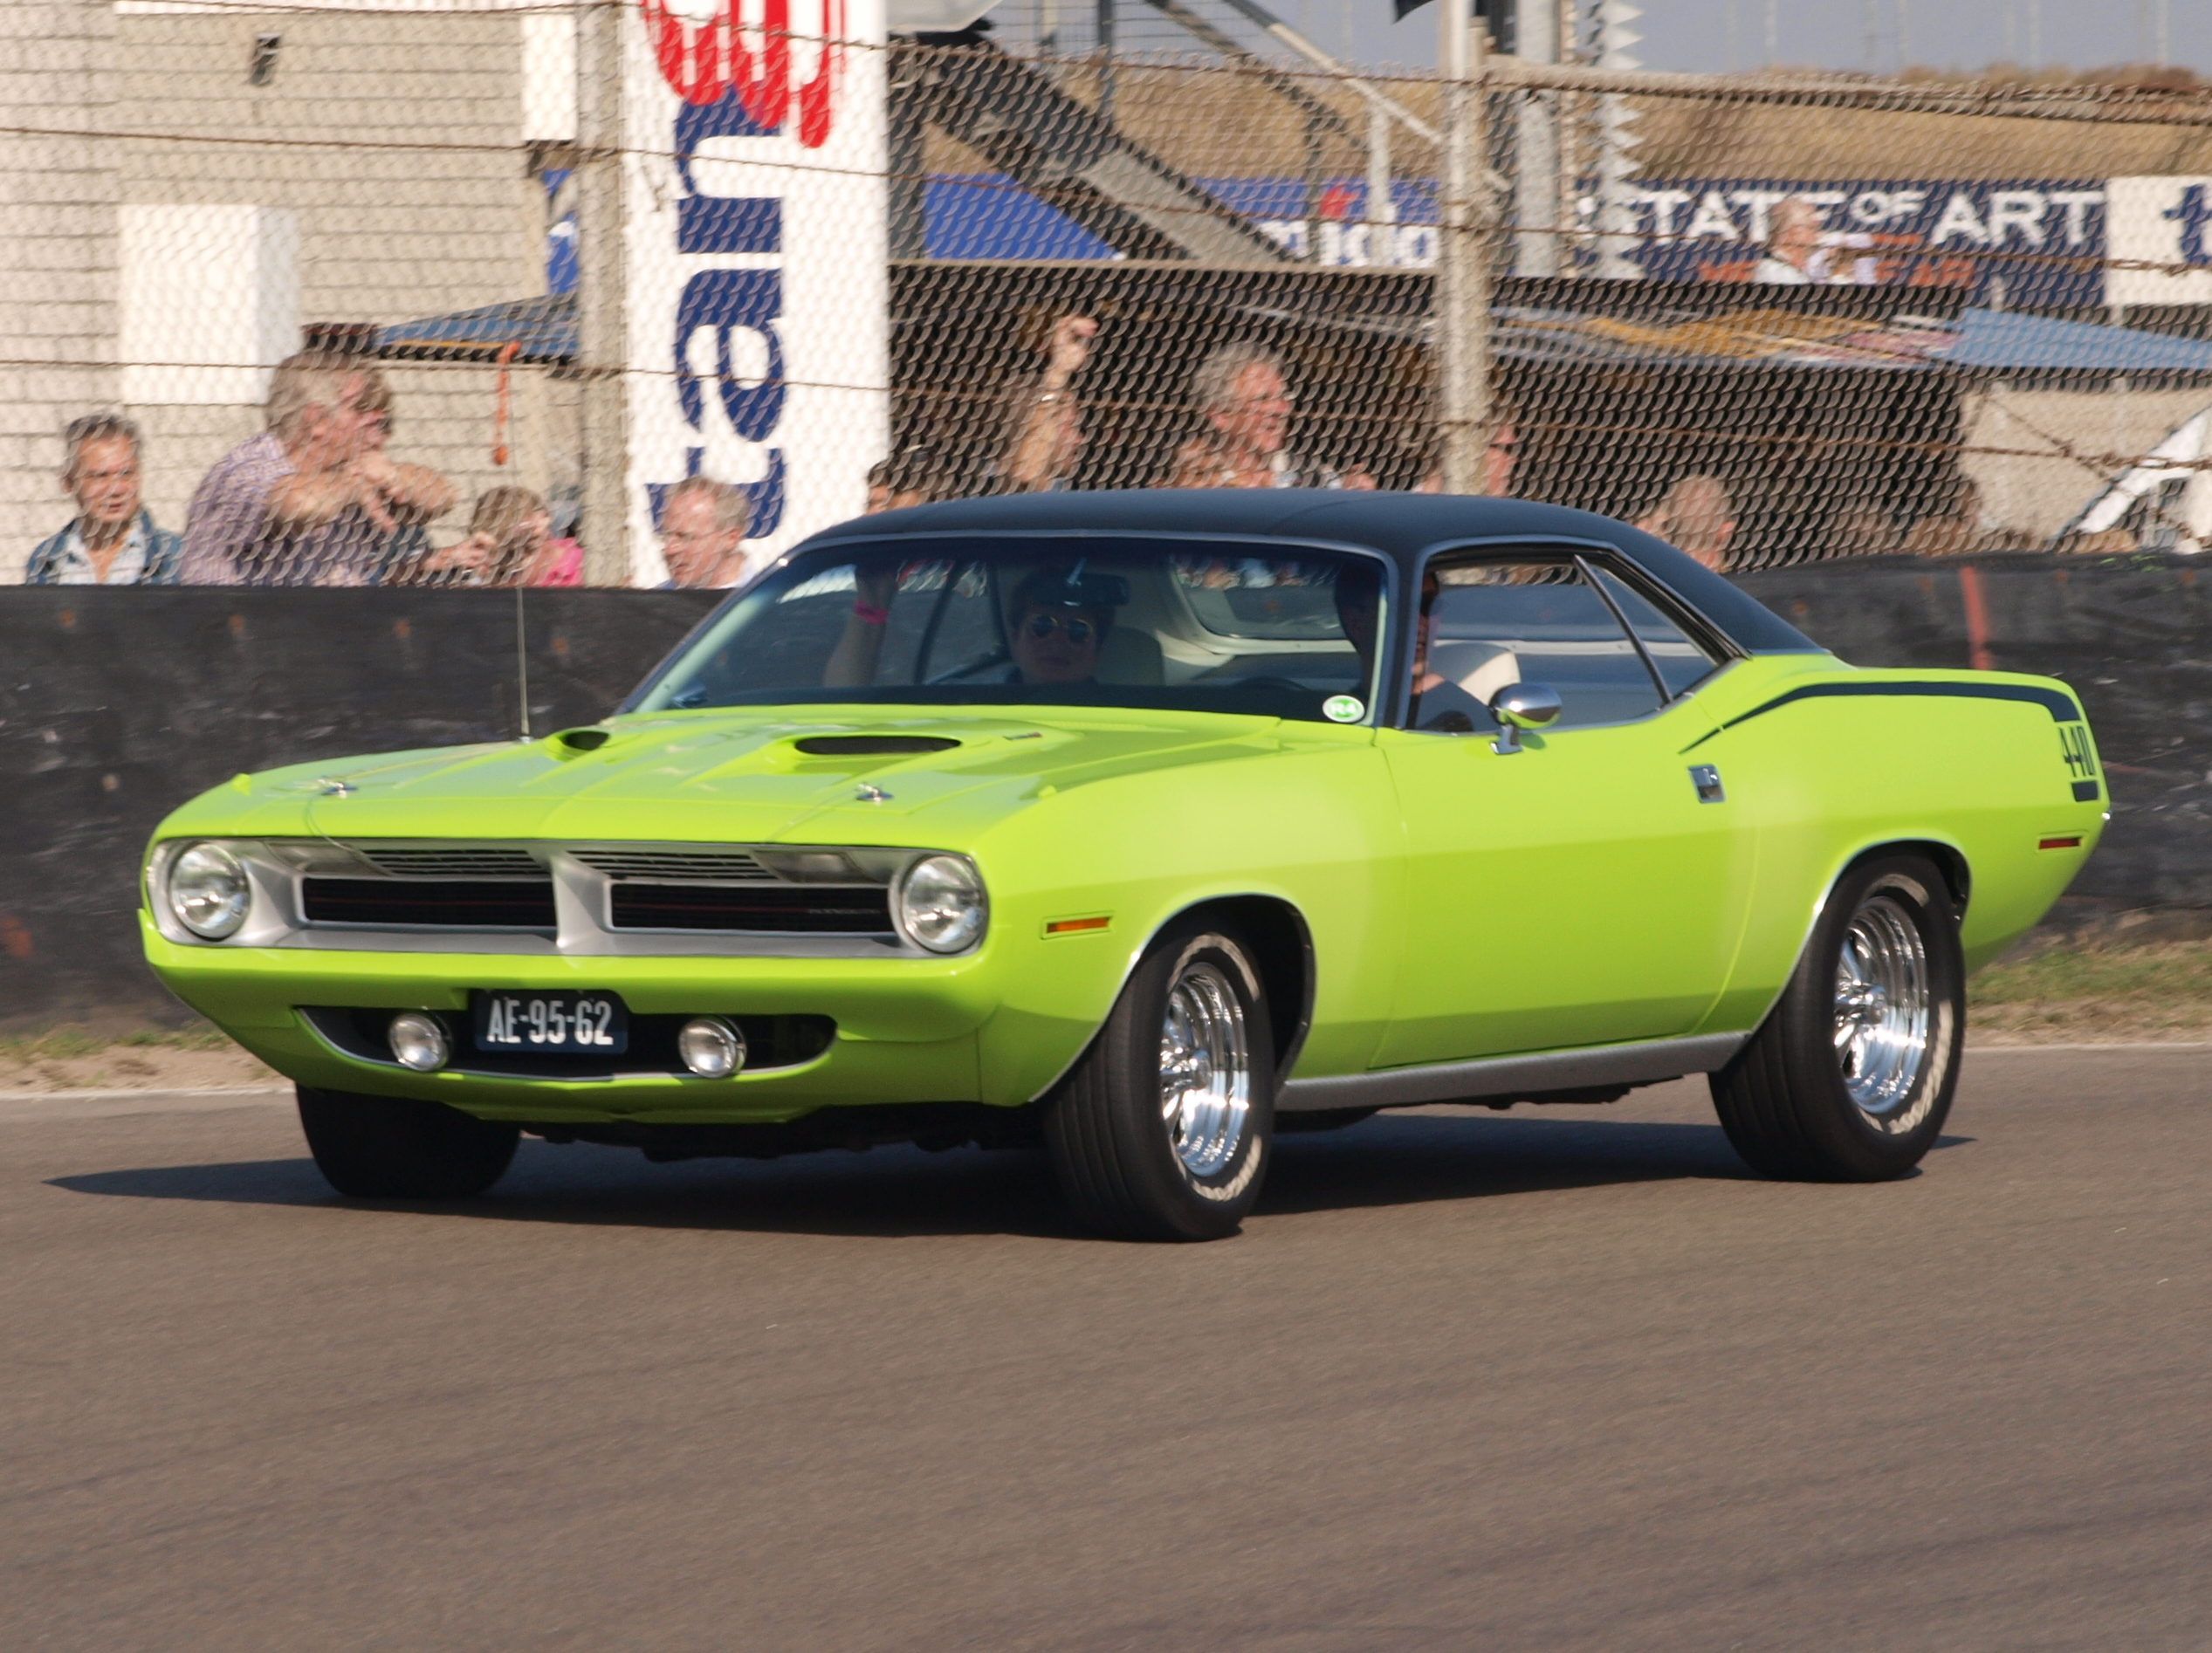 The 1970 Plymouth Barracuda is a two door muscle car ... & 15 Best American Classic Muscle Cars of All Time - RankRed markmcfarlin.com